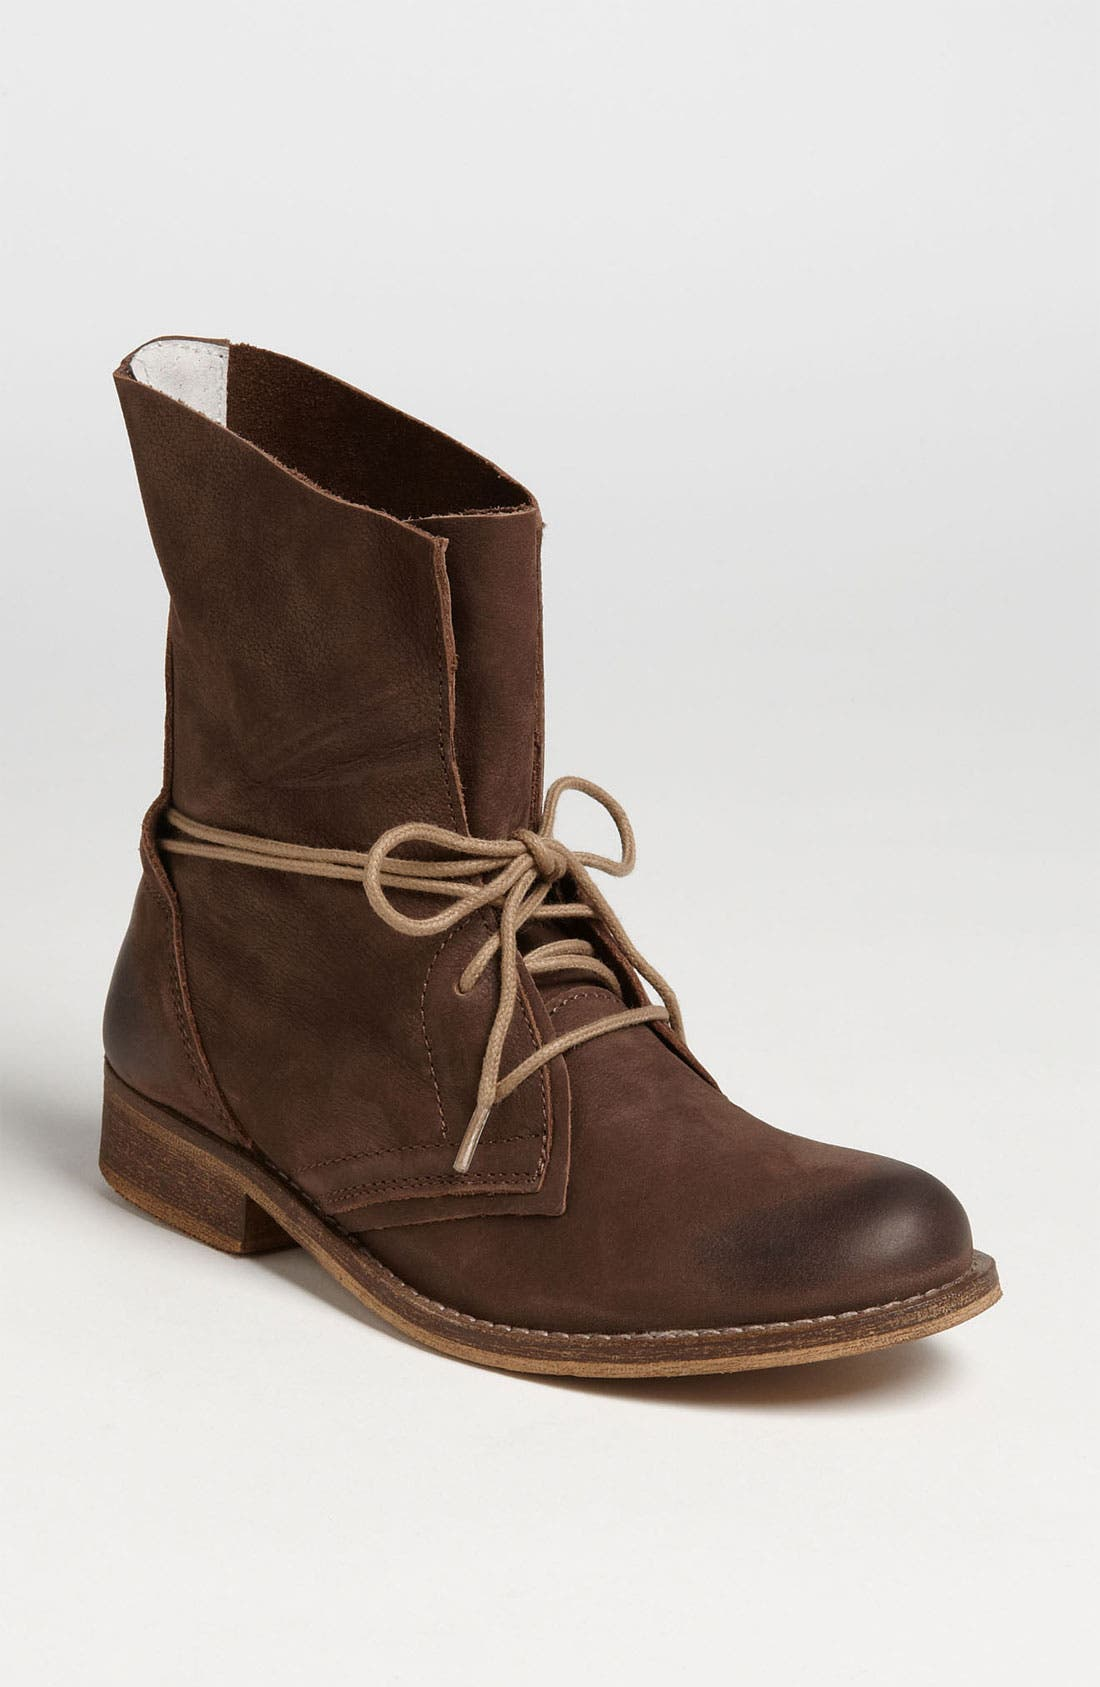 Alternate Image 1 Selected - Steve Madden 'Soluri' Boot